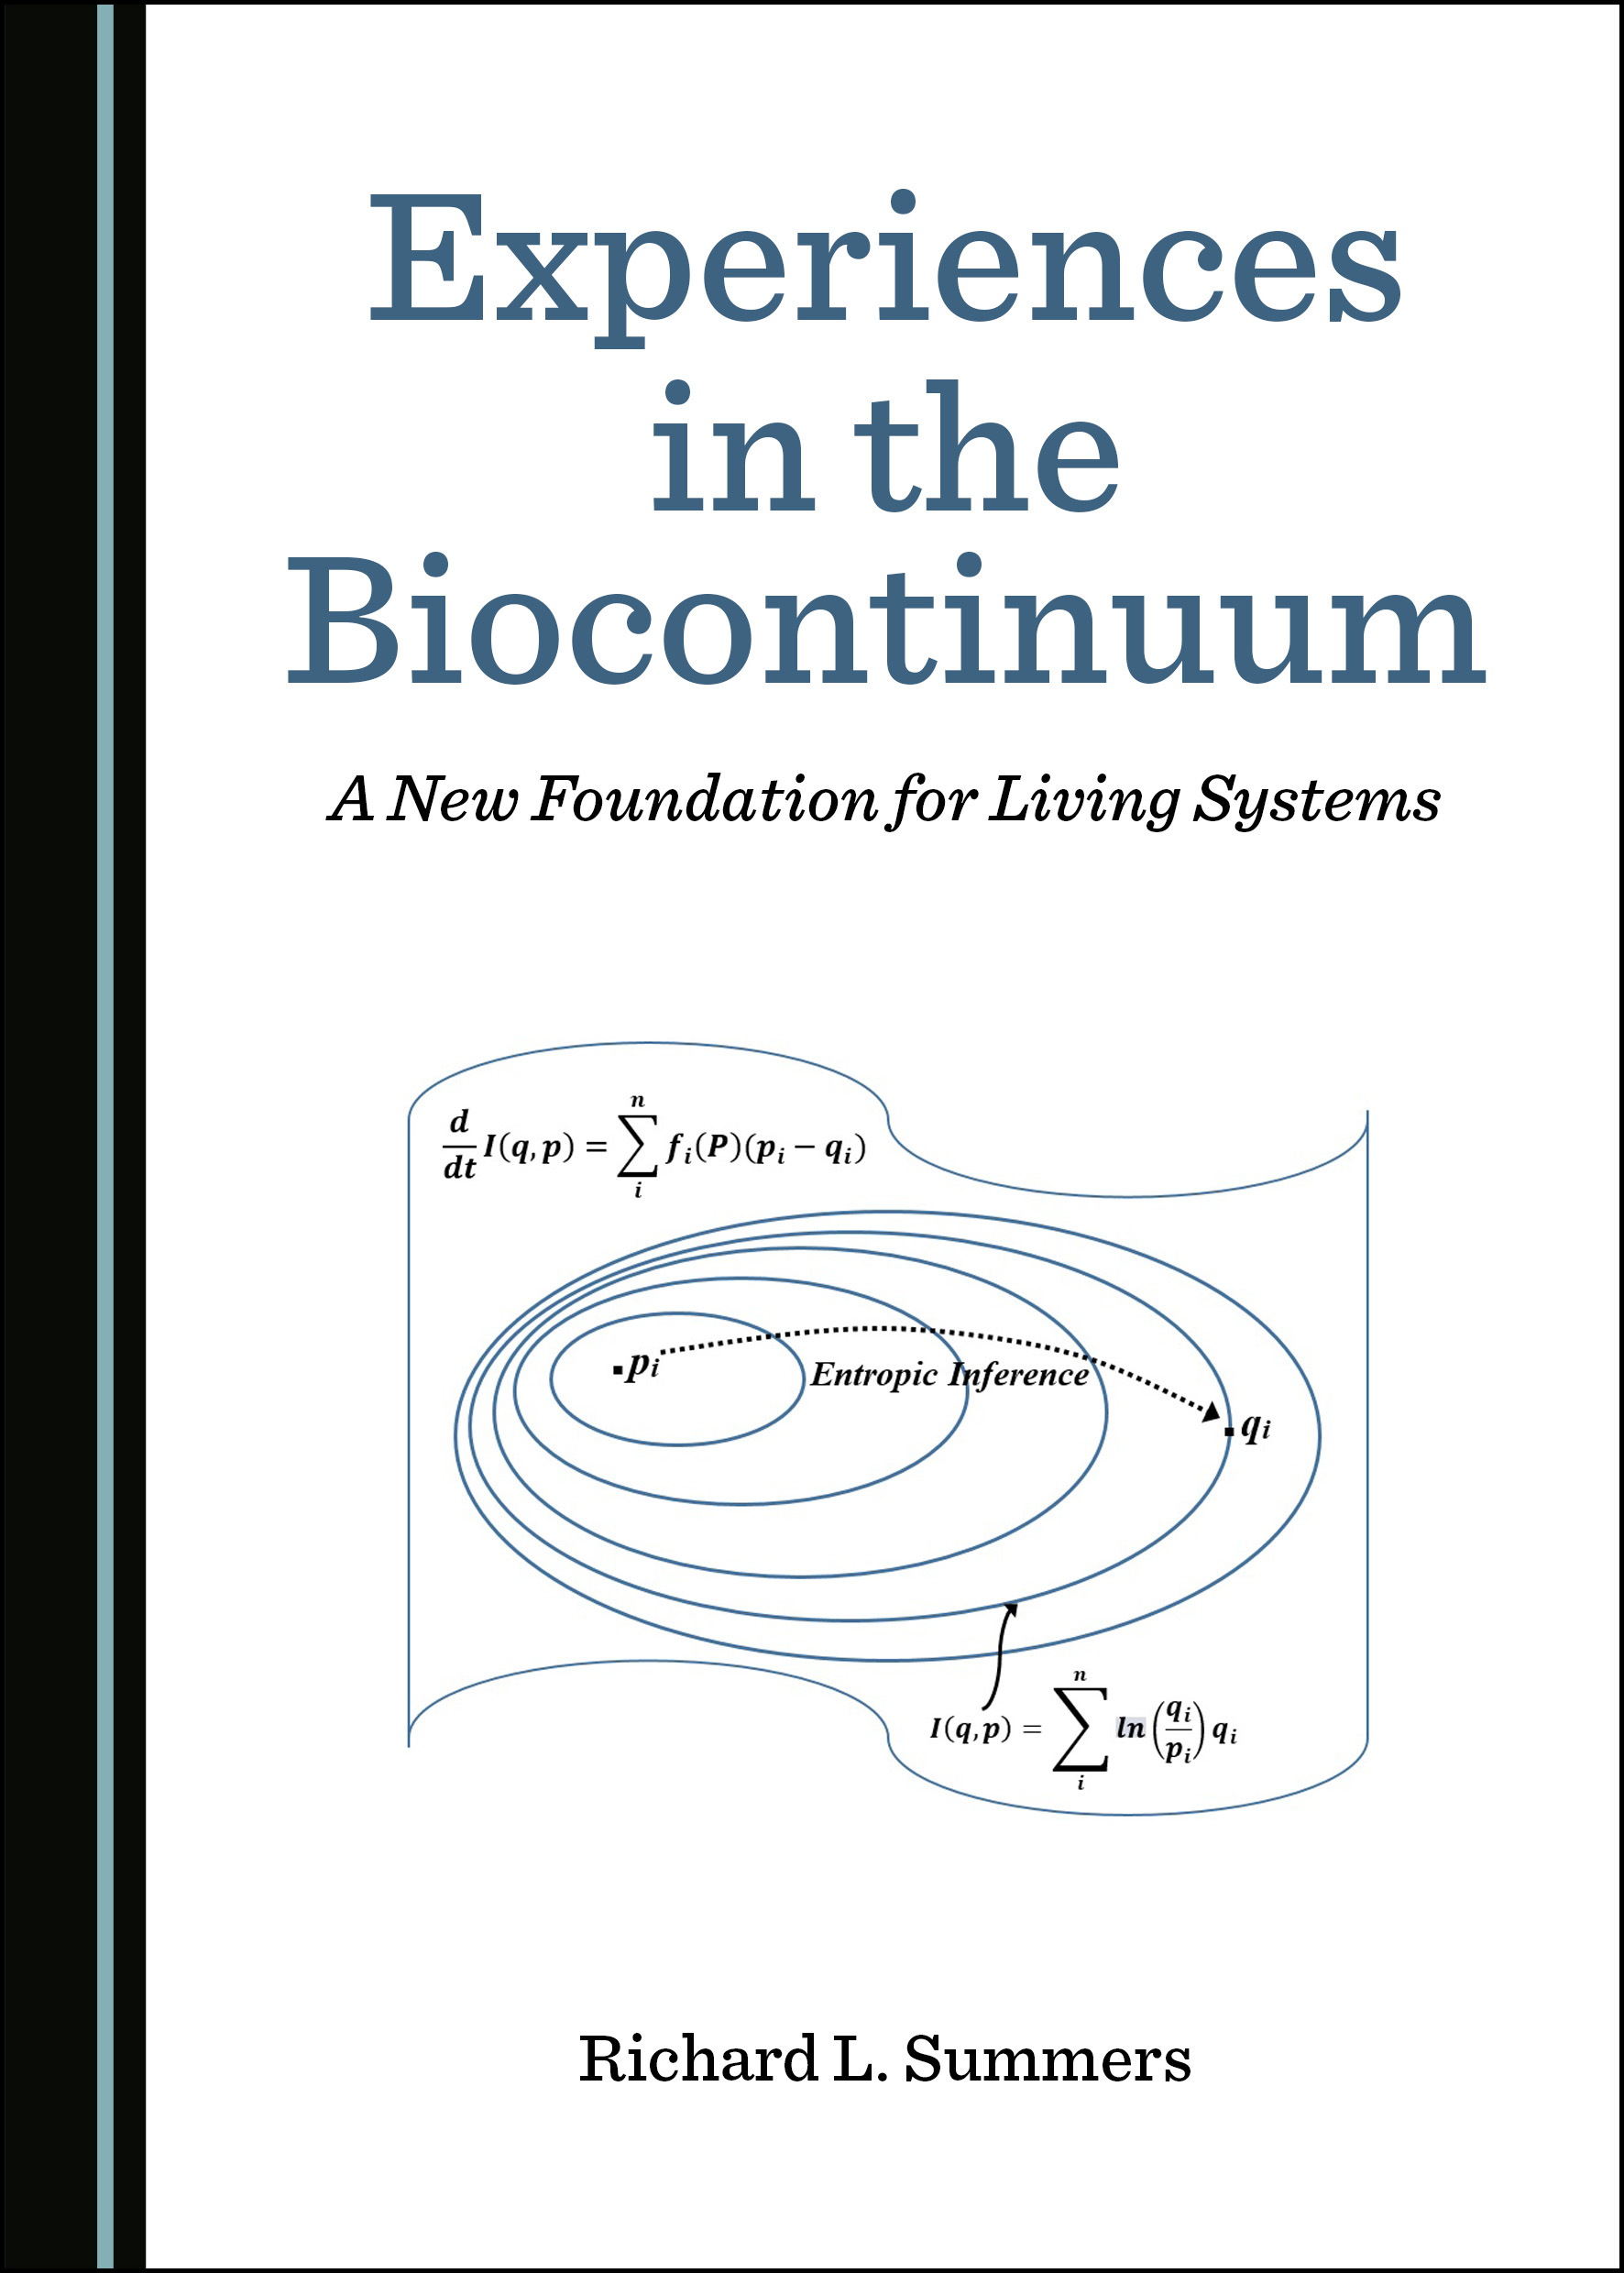 Experiences in the Biocontinuum: A New Foundation for Living Systems